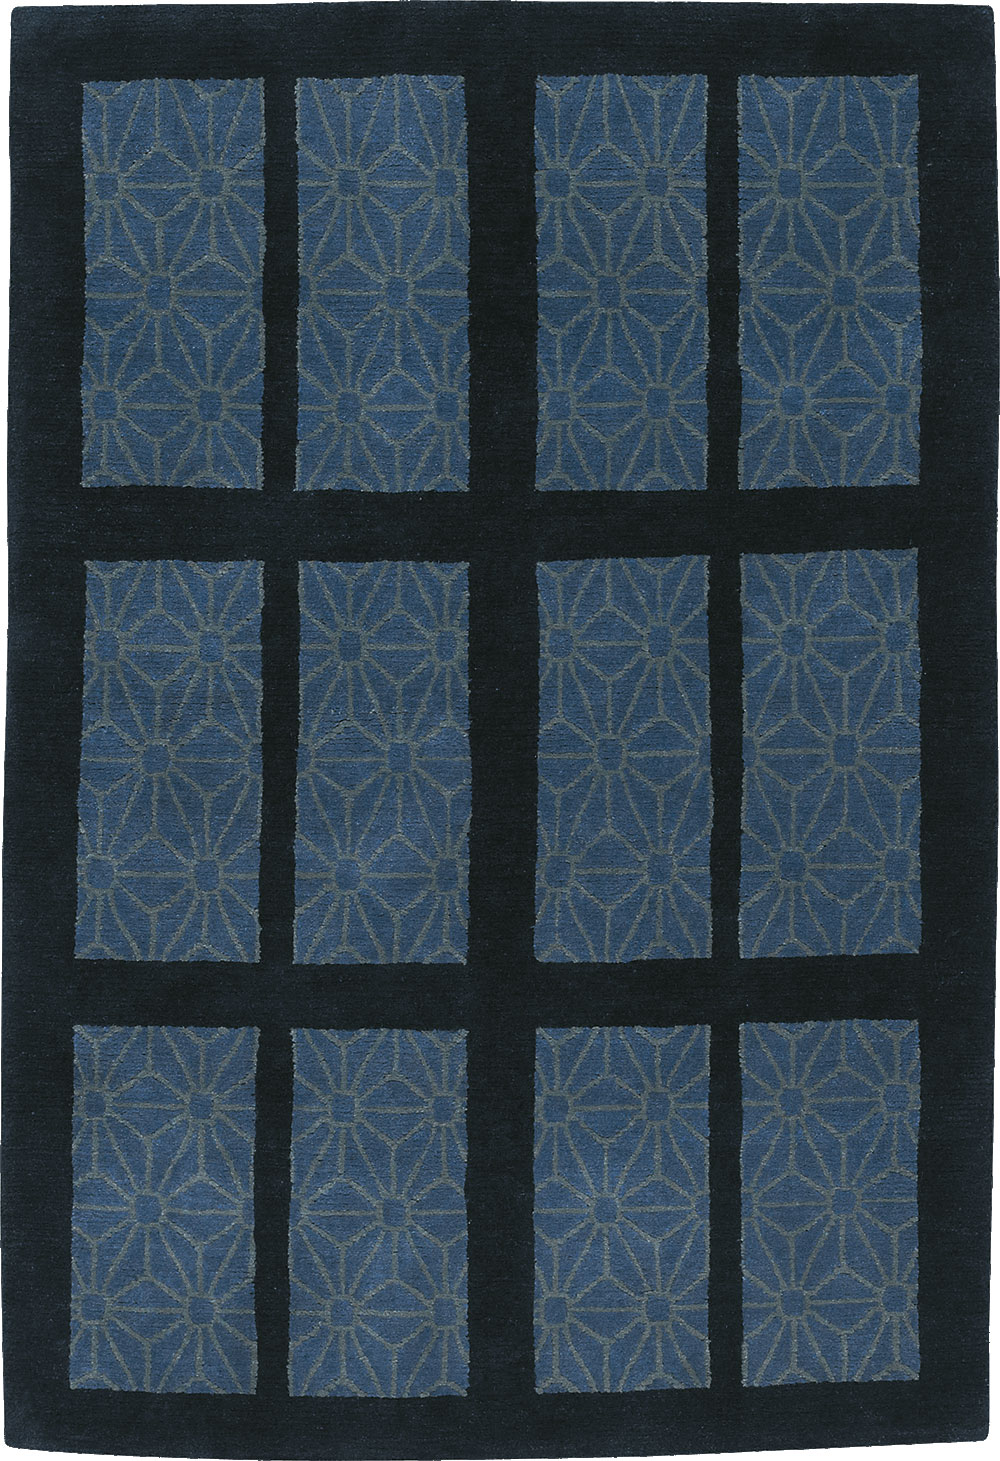 STAINED-GLASS-OCEAN-L-6581